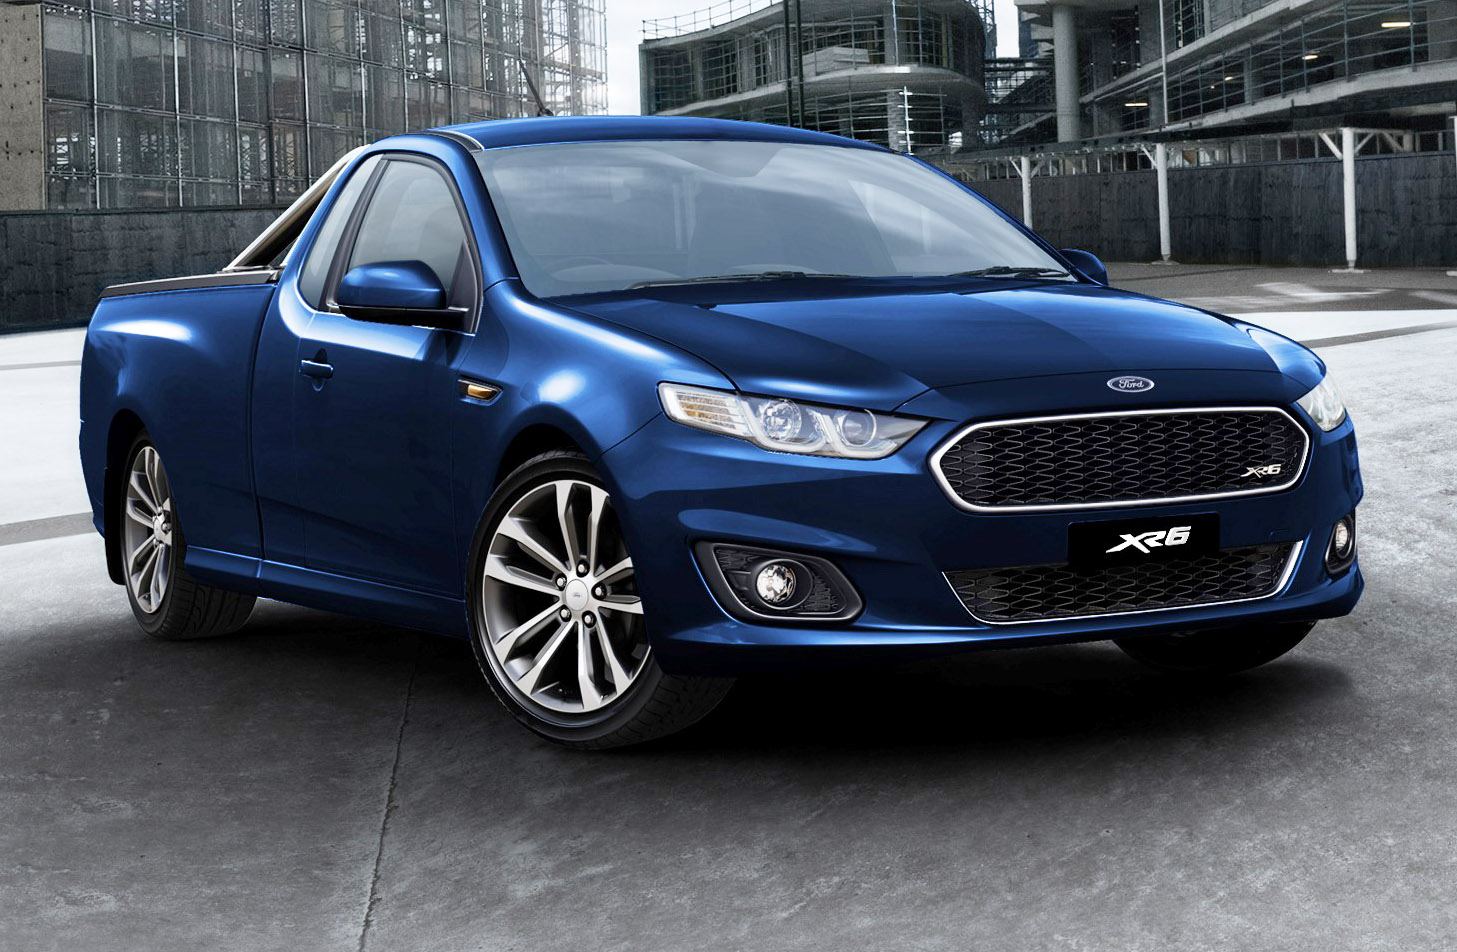 Ford Falcon Ute Recalled For Axle Weld Weakness